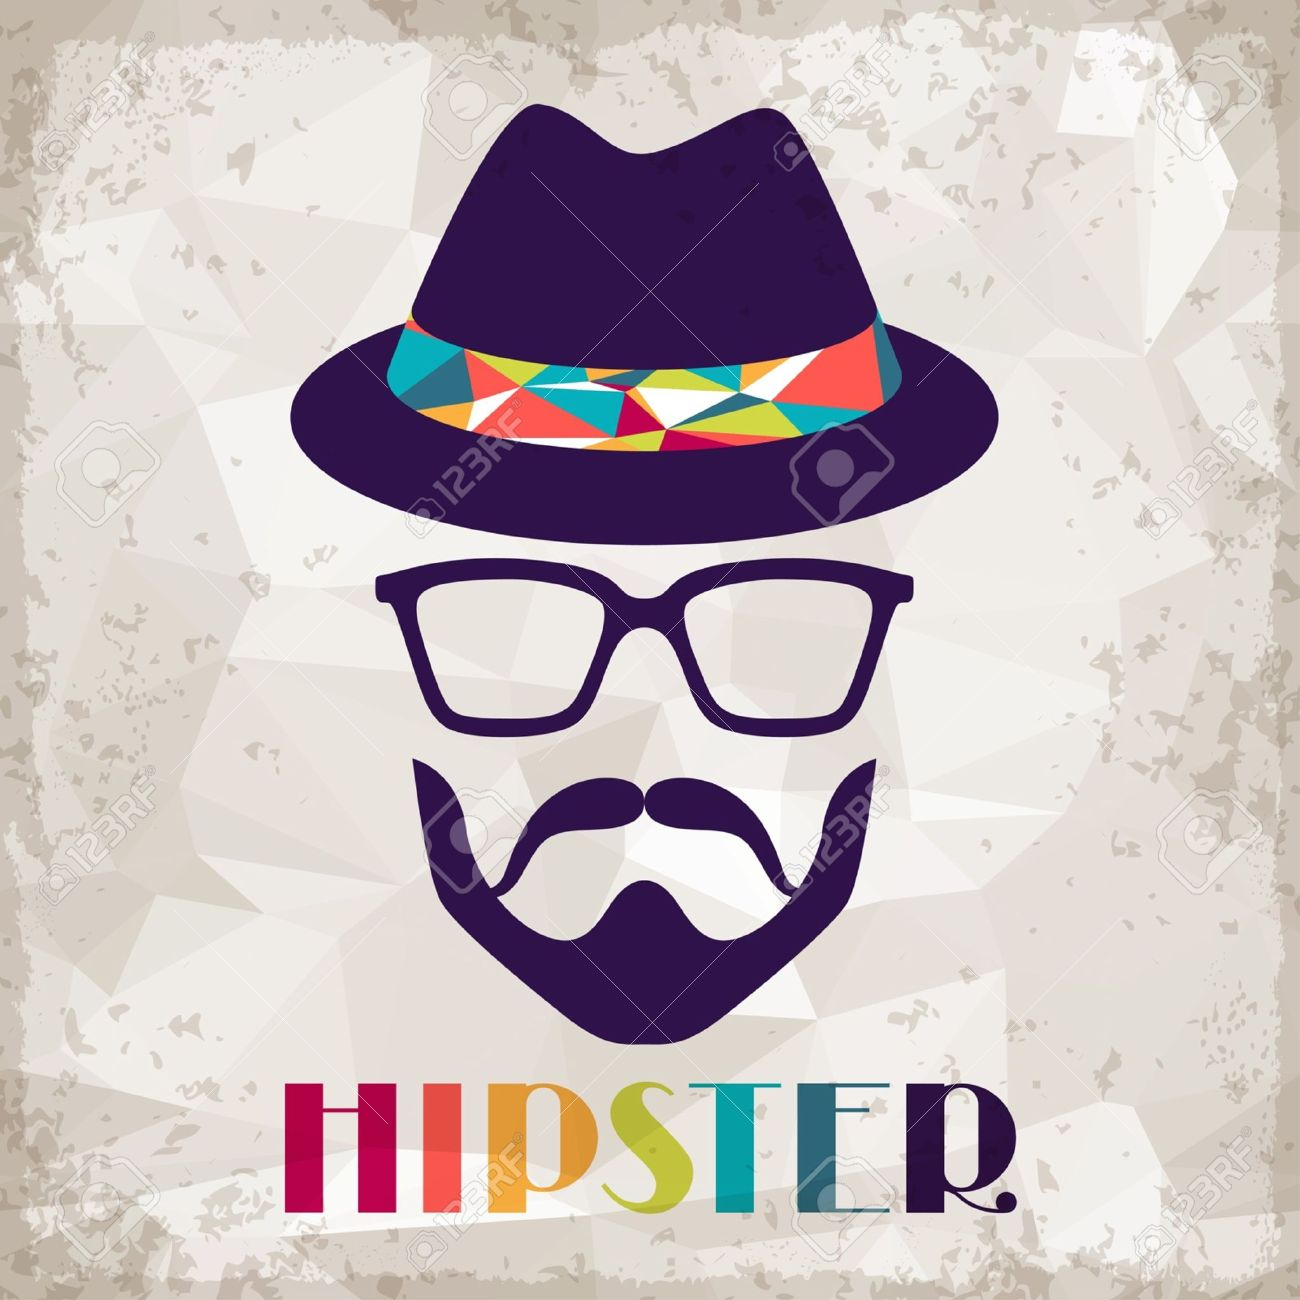 Hipster background in retro style. Stock Vector - 20913524